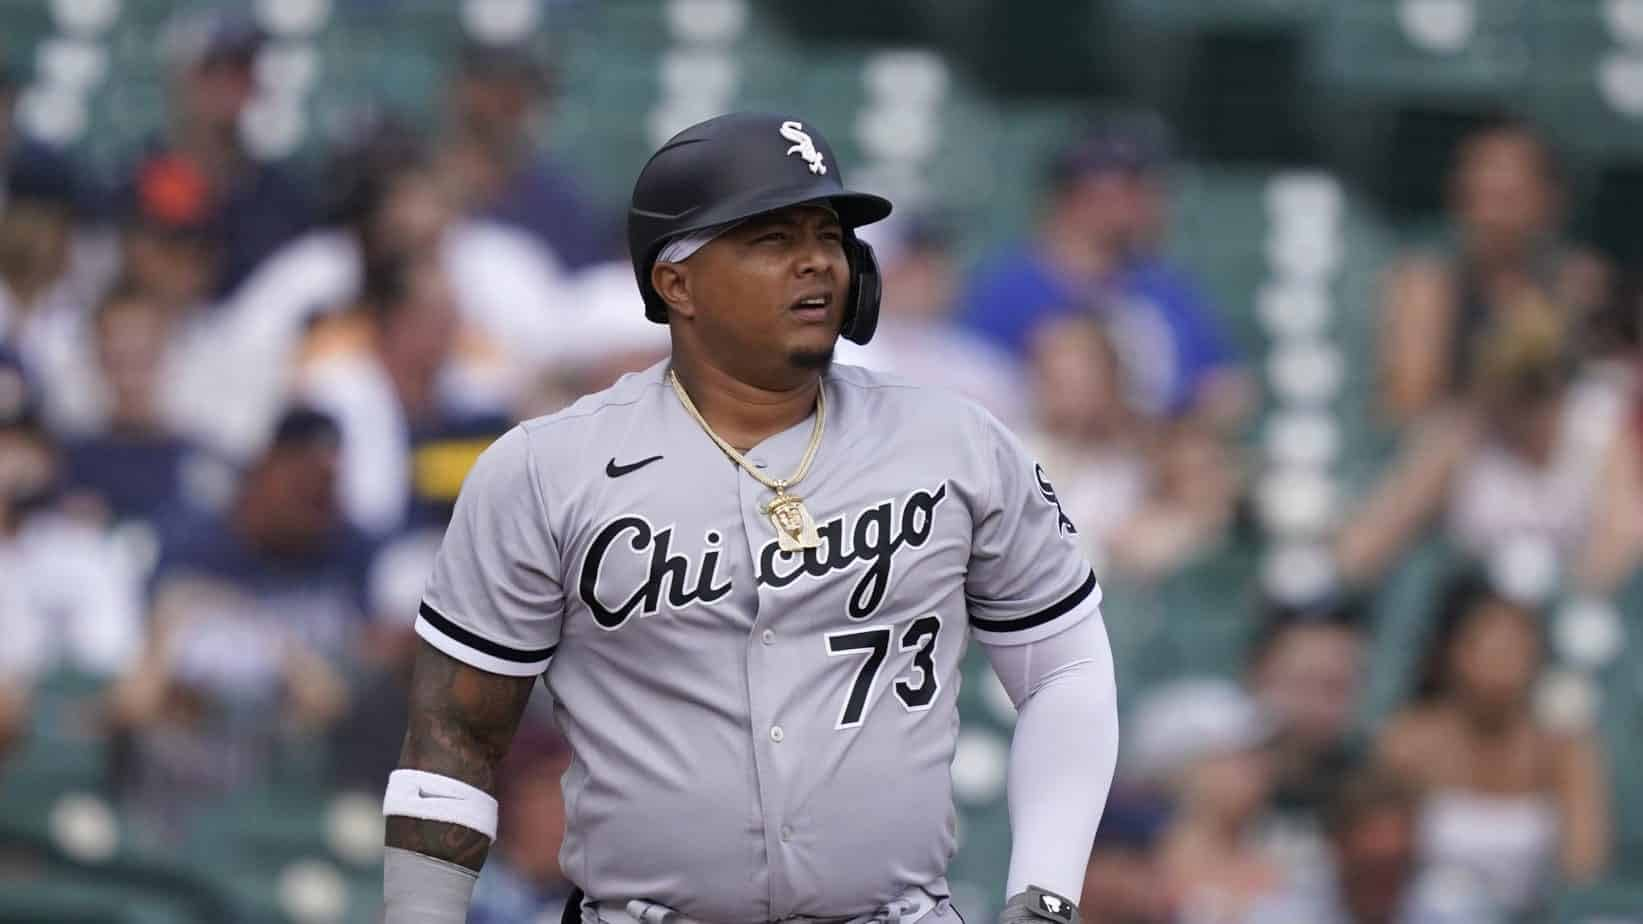 Chicago White Sox designated hitter Yermin Mercedes has surprisingly announced his retirement after being sent down to the minor leagues